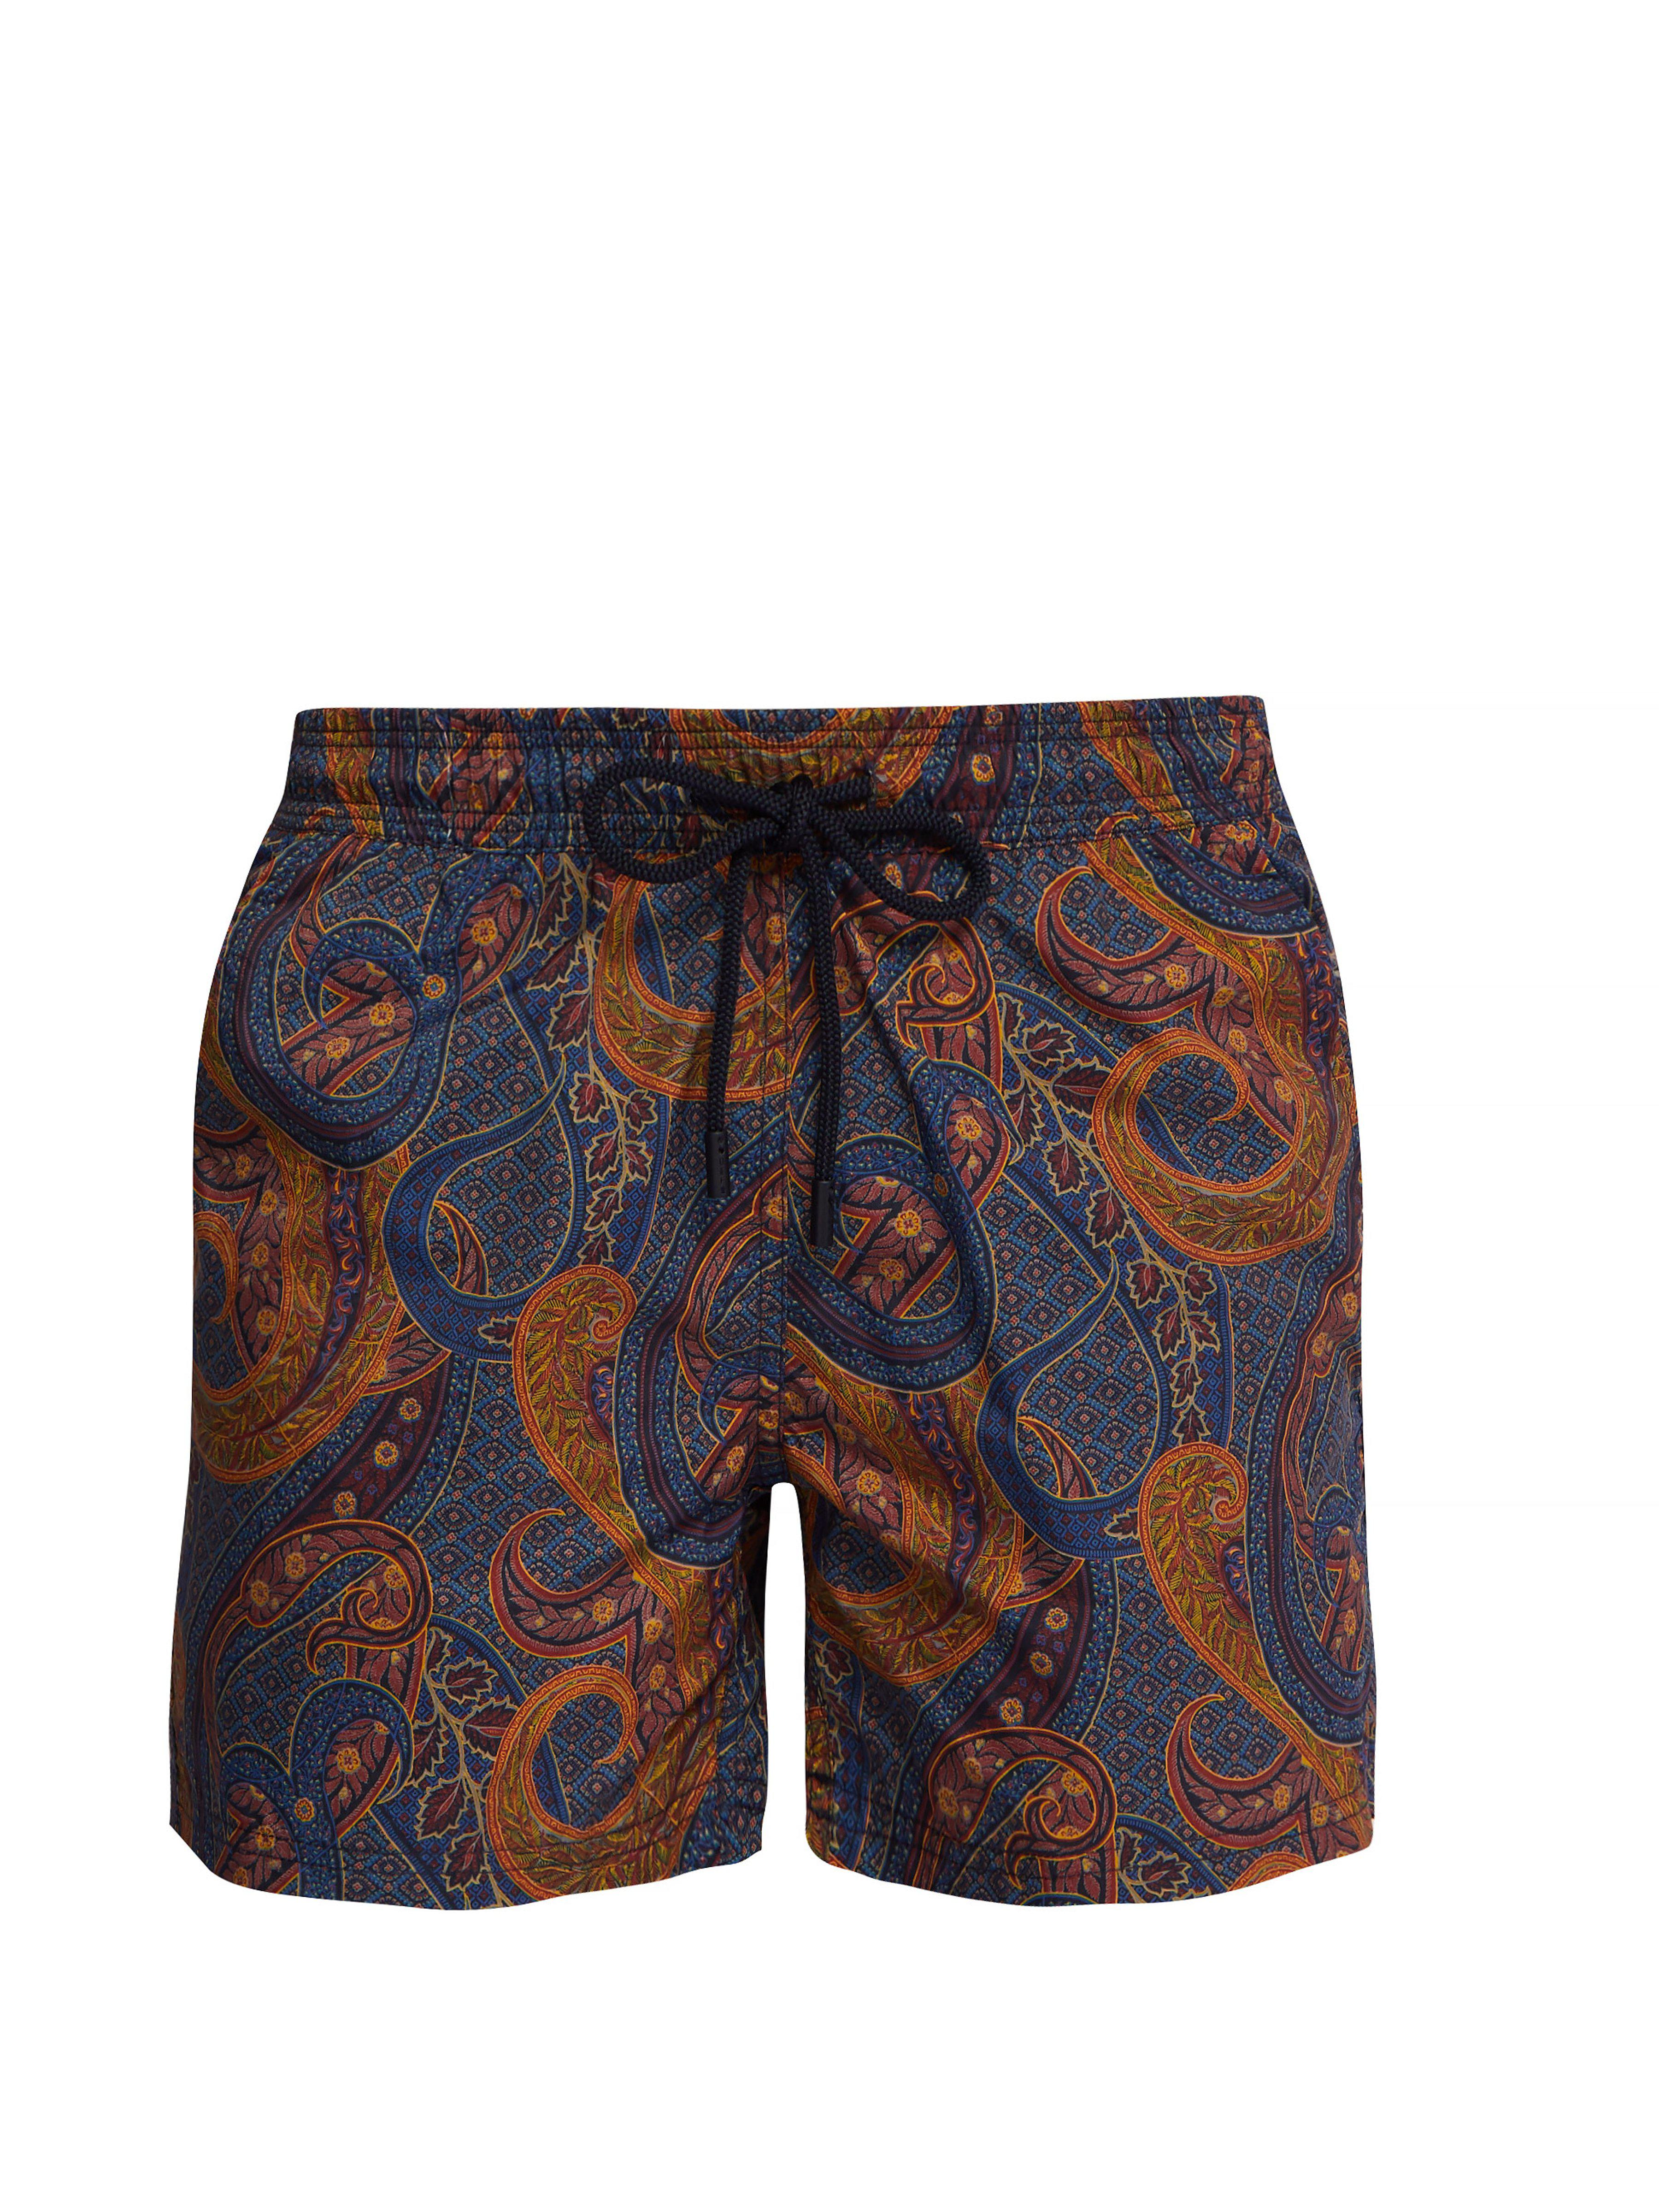 a705633082 Etro Printed Paisley Bathing Suit in Blue for Men - Save 28% - Lyst